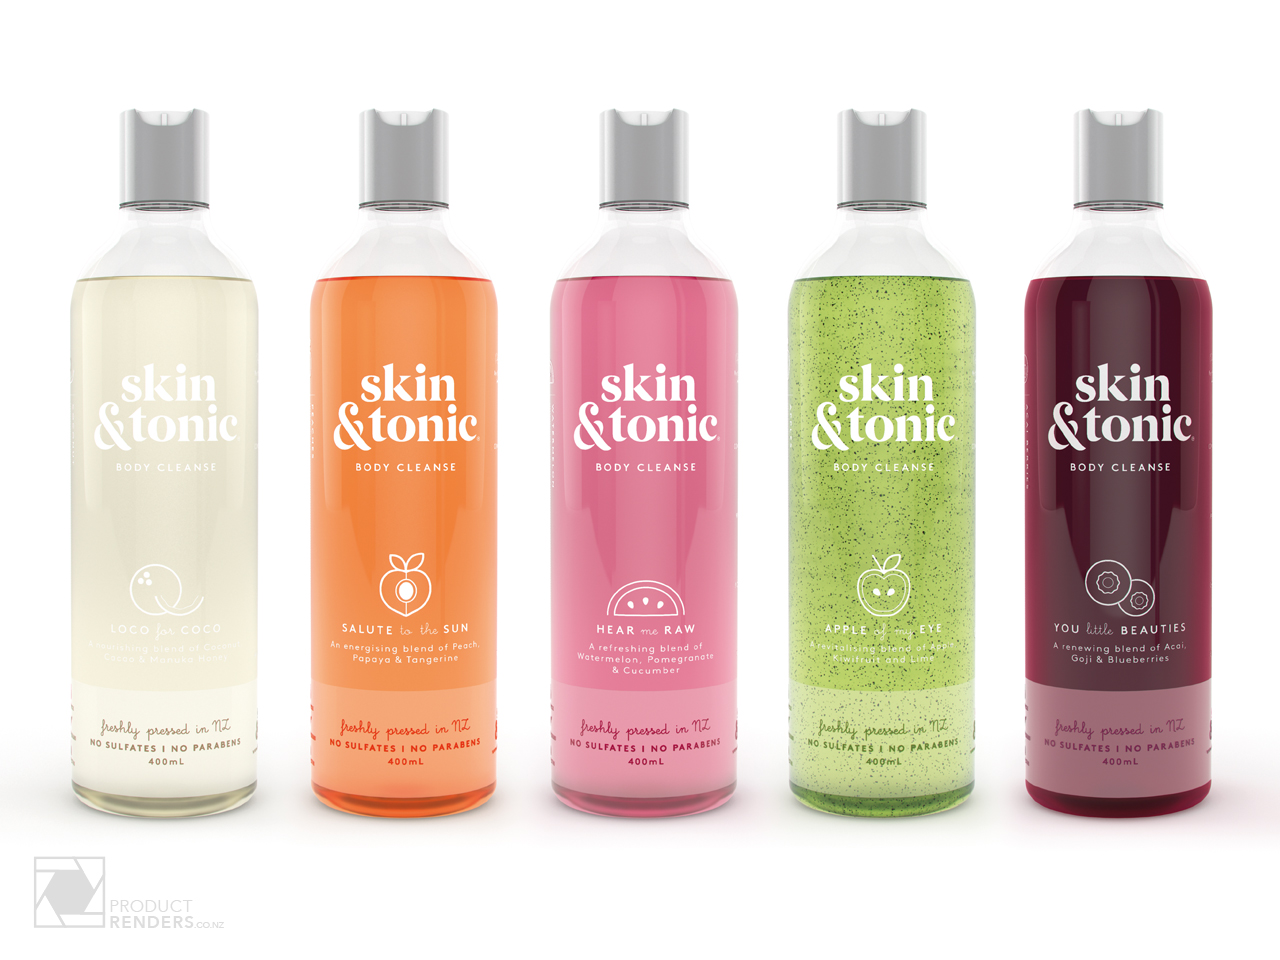 3D packaging render of the Skin & Tonic's range of body cleansers